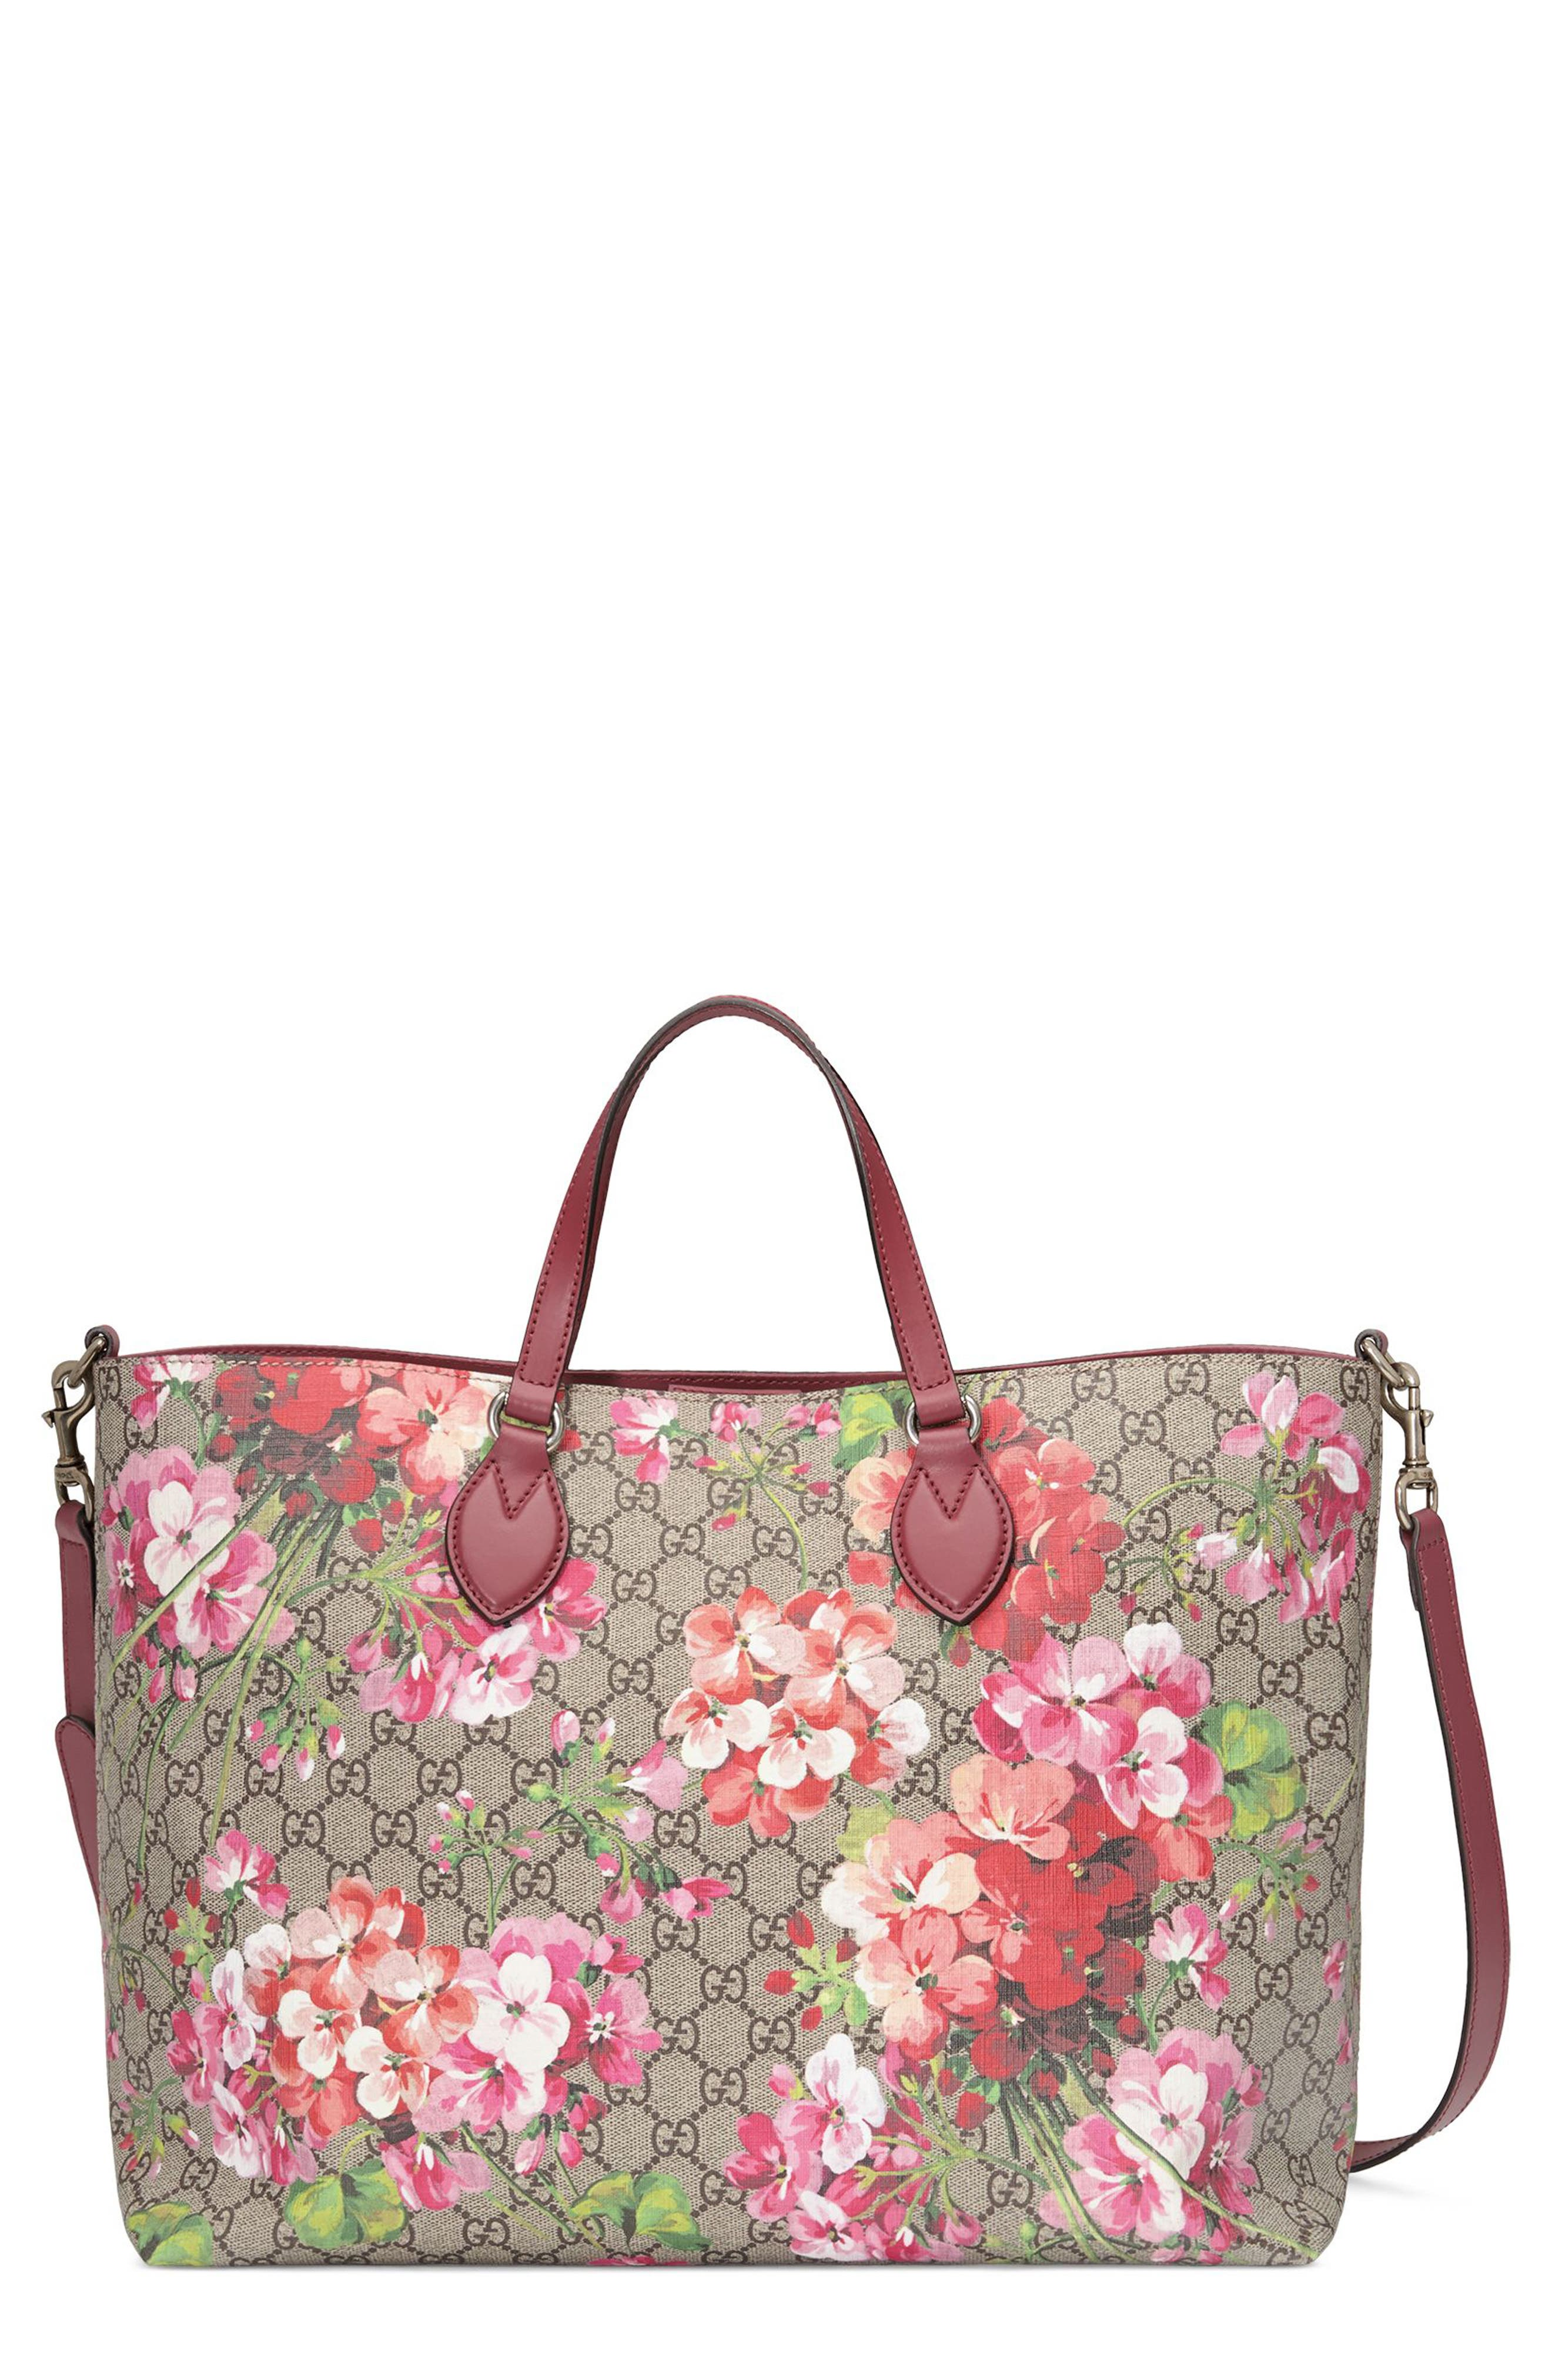 Soft GG Blooms Tote,                             Main thumbnail 1, color,